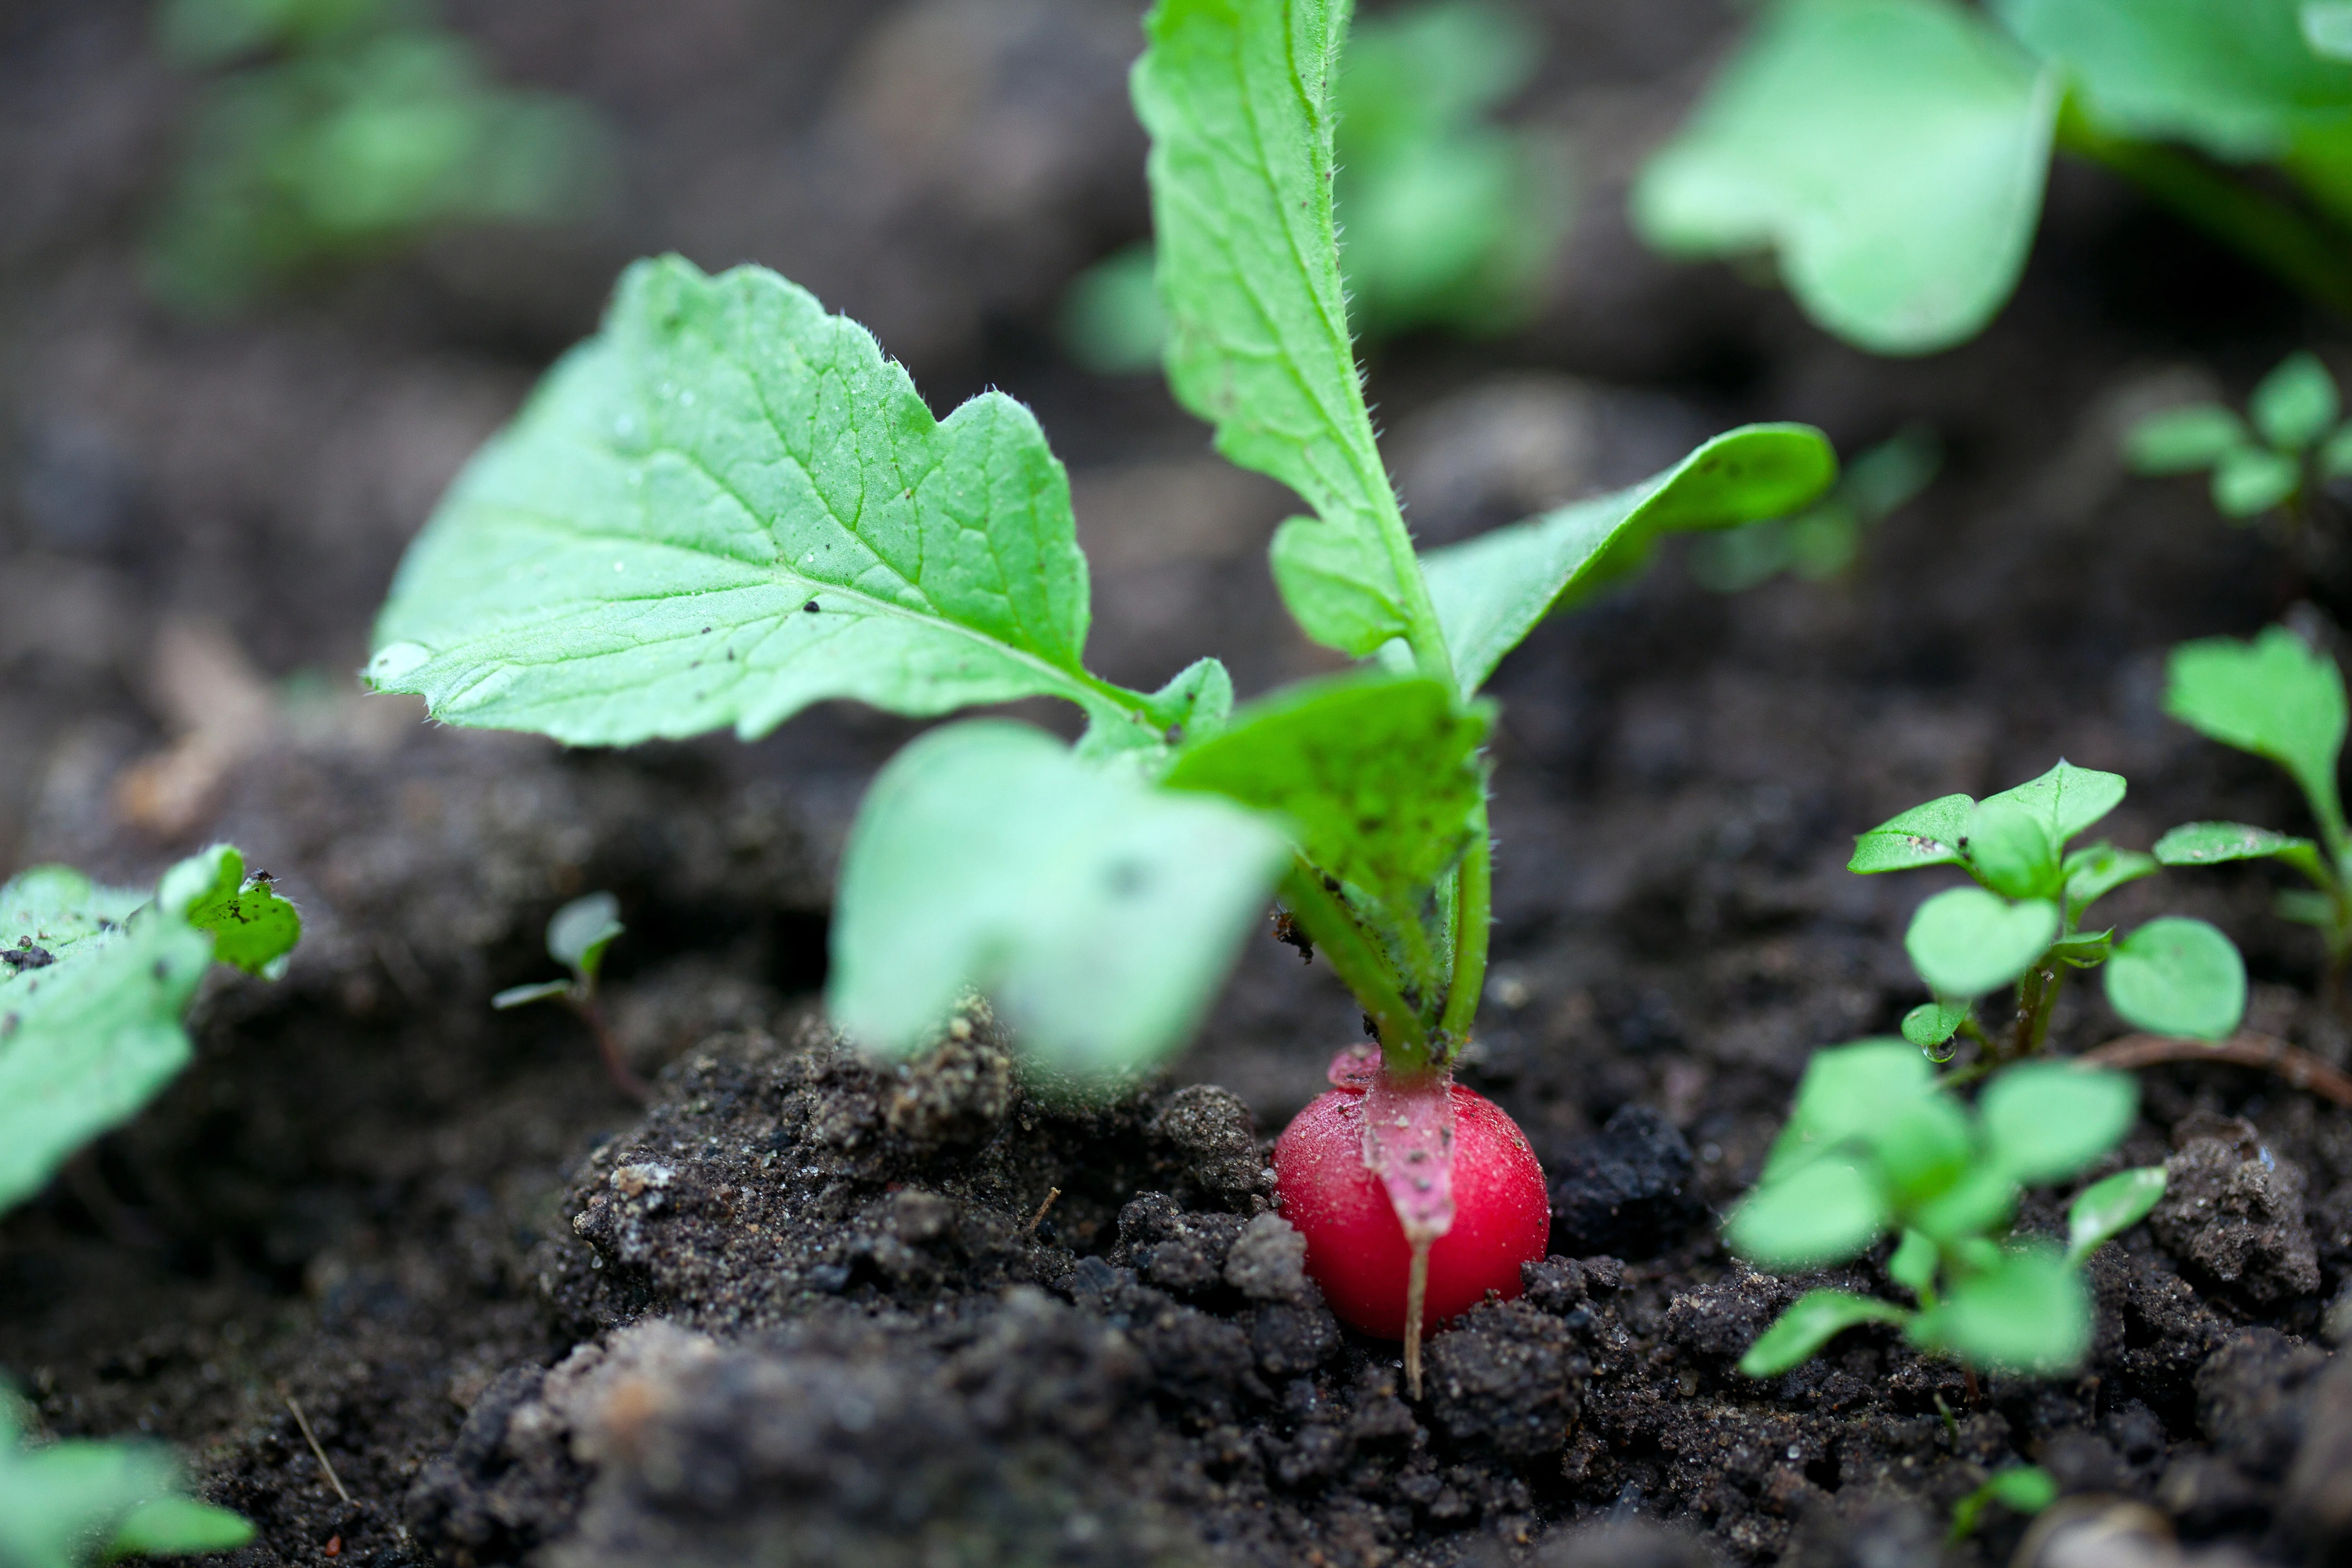 30 Second Guide to Growing Radishes